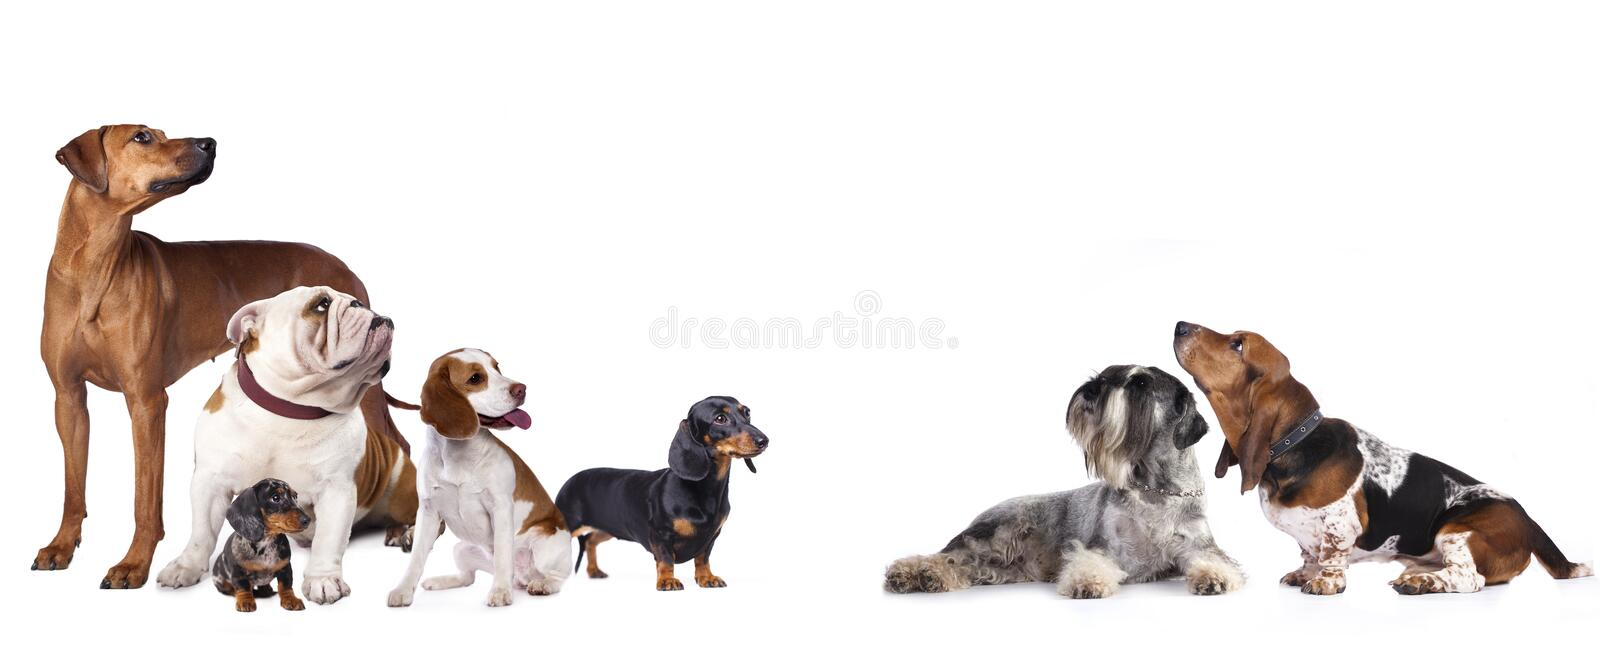 Group of dogs. On a white background standing and looking up stock images